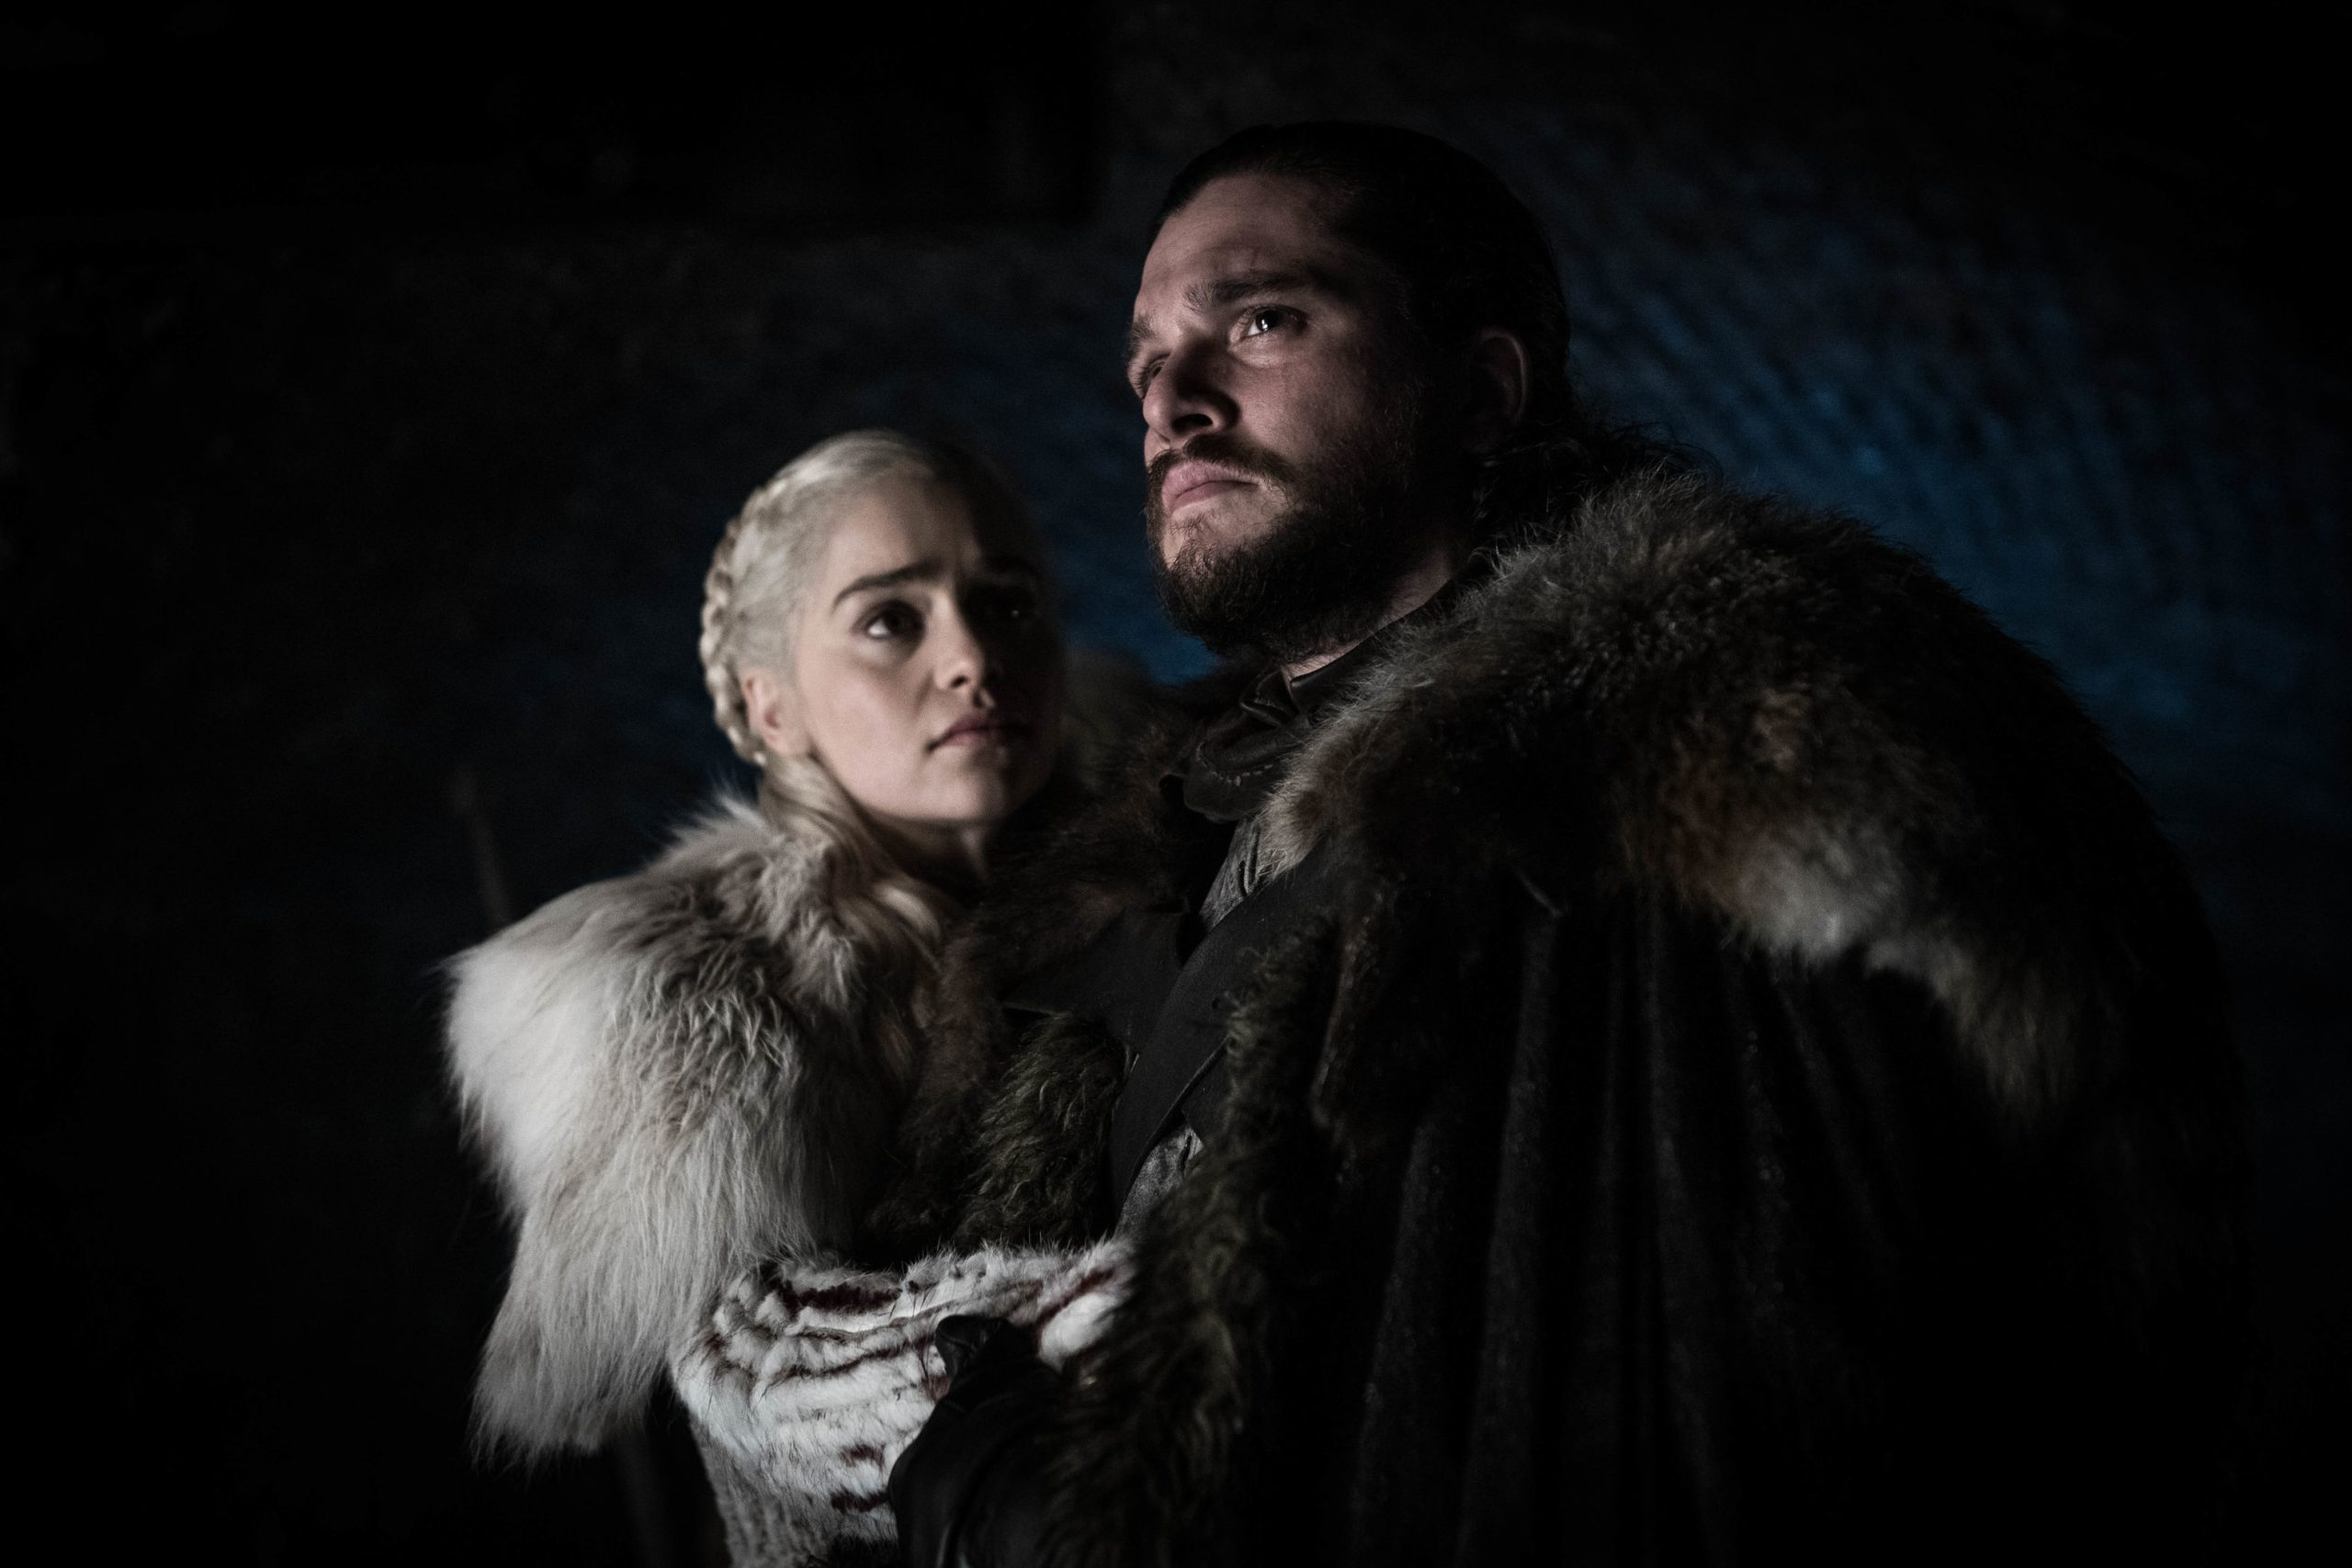 Games Of Thrones Prequel: Will Emilia Clarke & Kit Harington Return? Here Is Everything You Should Know